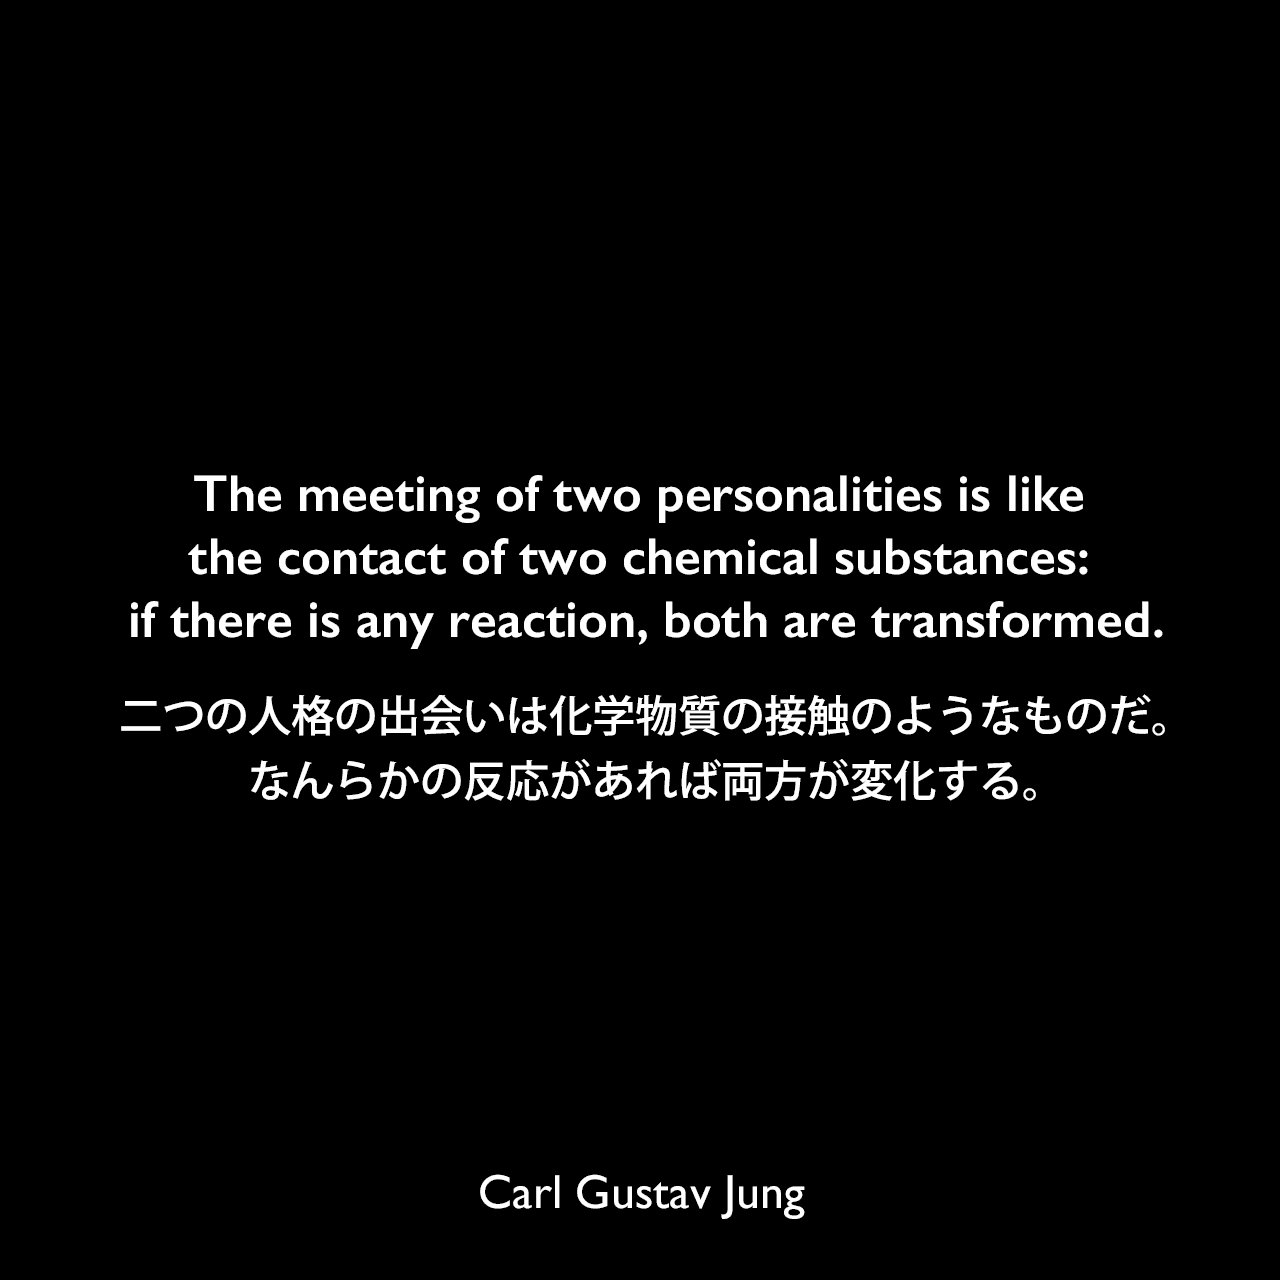 The meeting of two personalities is like the contact of two chemical substances: if there is any reaction, both are transformed.二つの人格の出会いは化学物質の接触のようなものだ。なんらかの反応があれば両方が変化する。- ユングによる本「Modern Man in Search of a Soul」よりCarl Gustav Jung